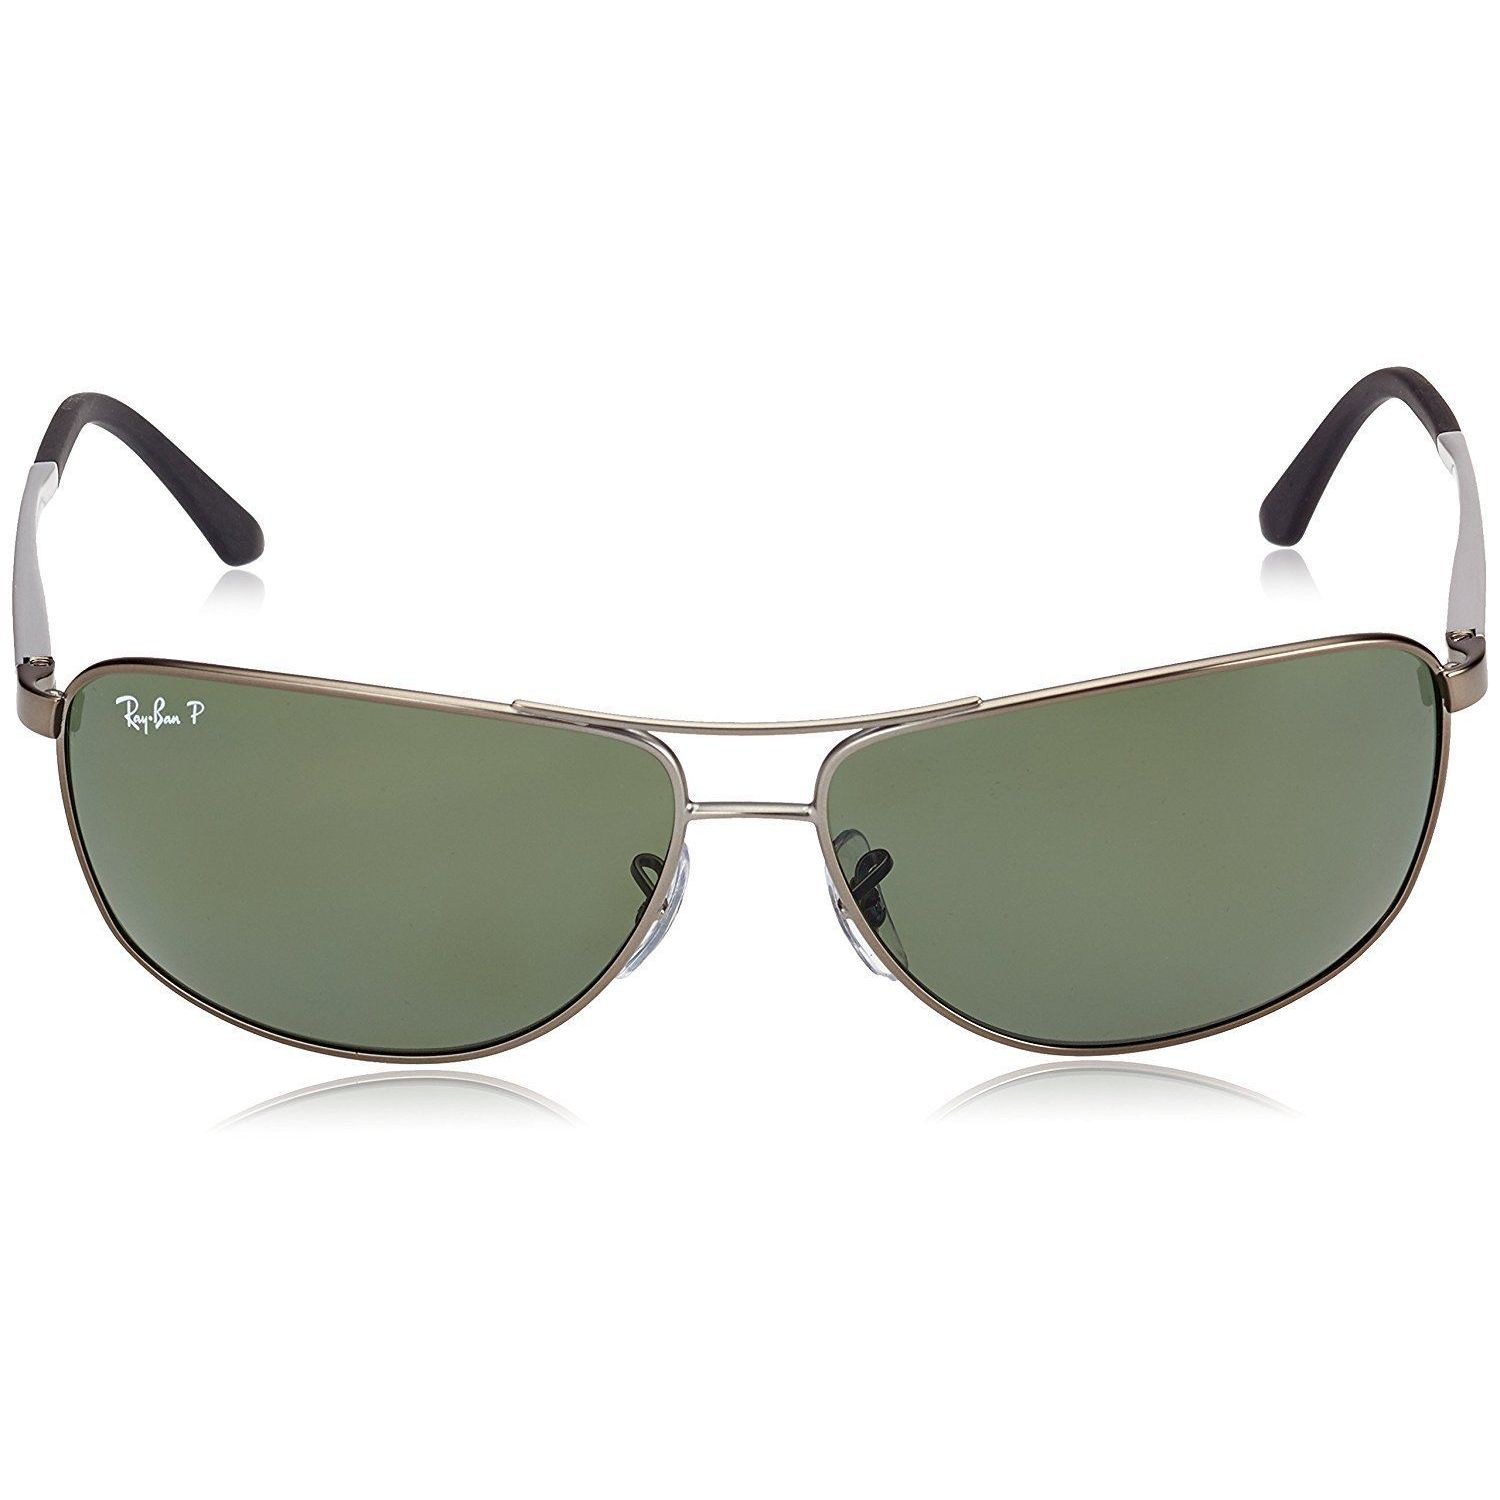 f7925c5f83b Shop Ray-Ban RB3506 029 9A Men s Gunmetal Silver Frame Polarized Green Lens  Sunglasses - Free Shipping Today - Overstock - 15003040